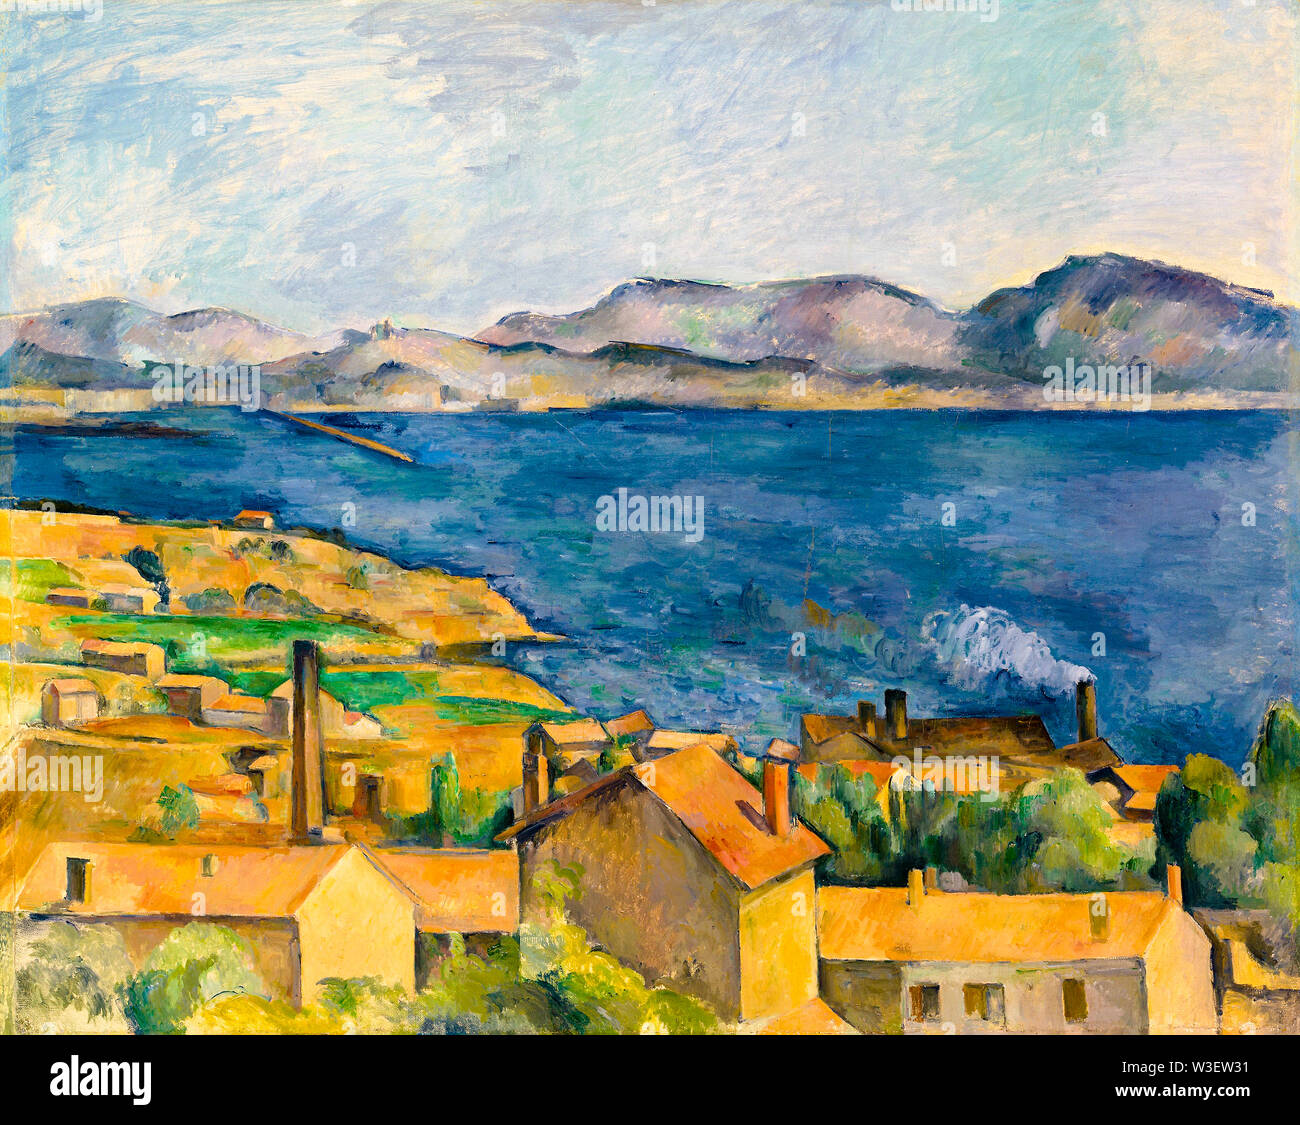 Paul Cezanne The Bay Of Marseille Seen From L Estaque Landscape Painting Circa 1885 Stock Photo Alamy